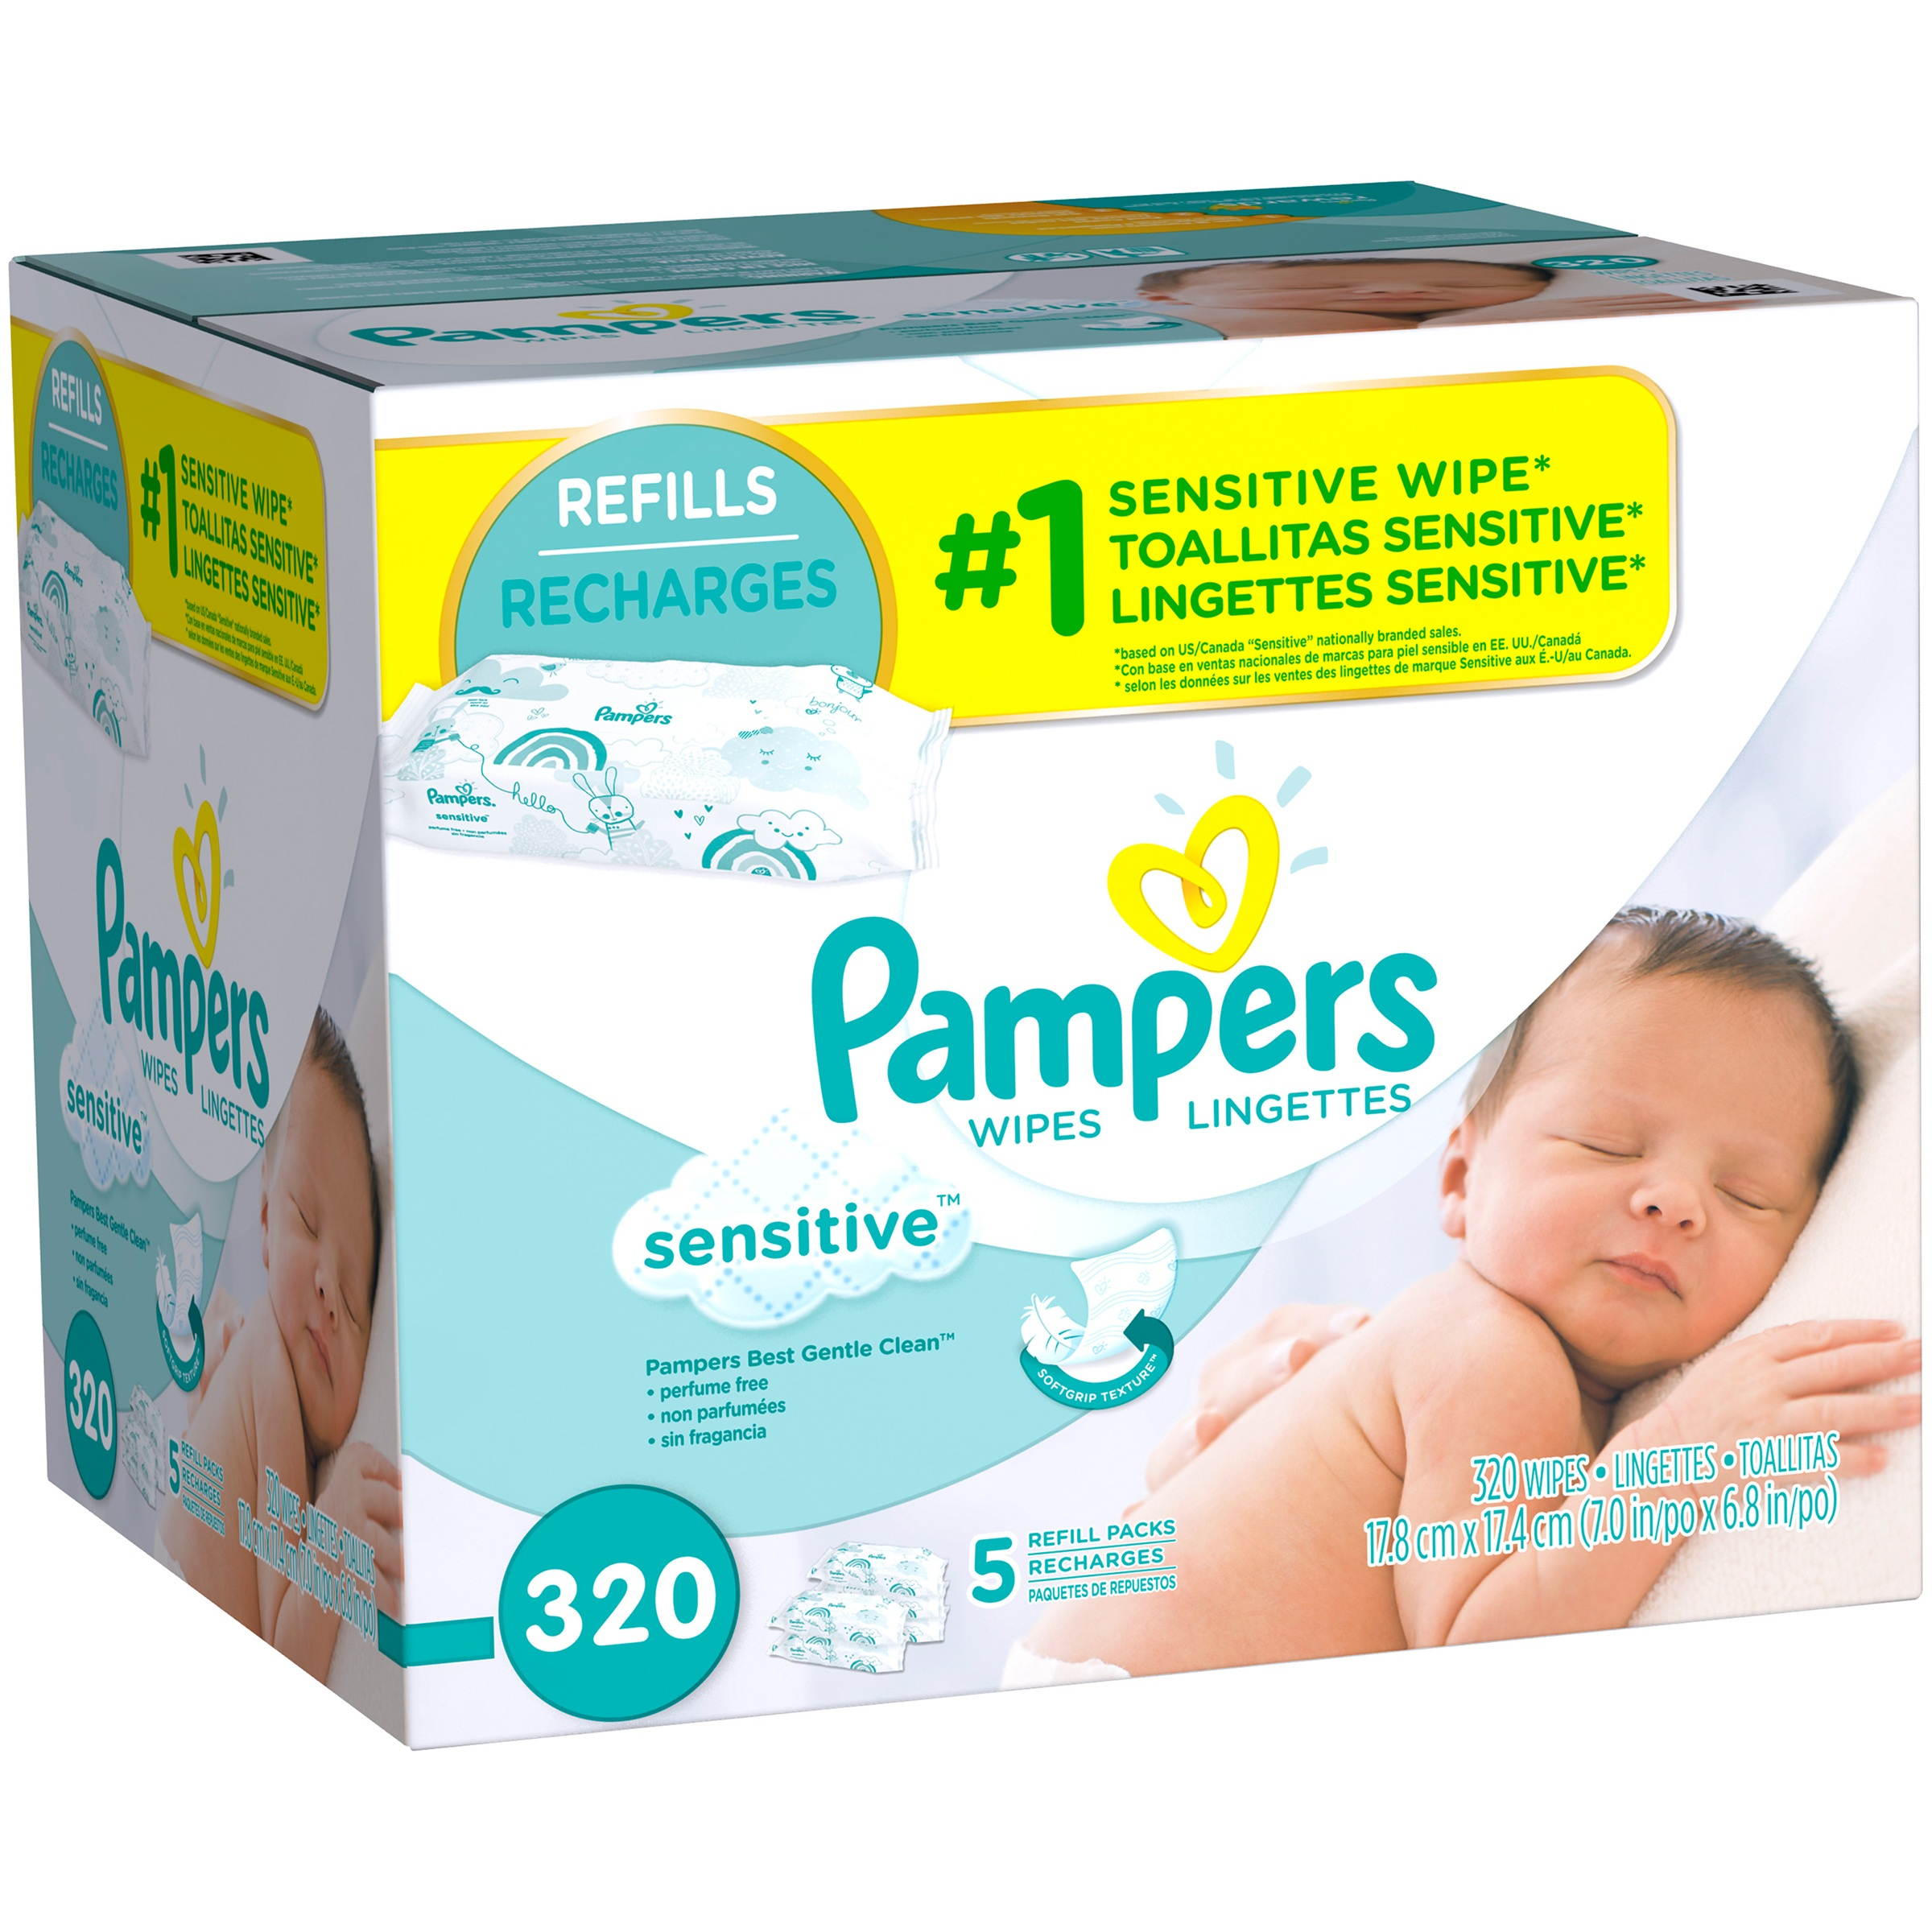 Pampers Sensitive Baby Wipes Refills, 5 packs of 64, (320 count)